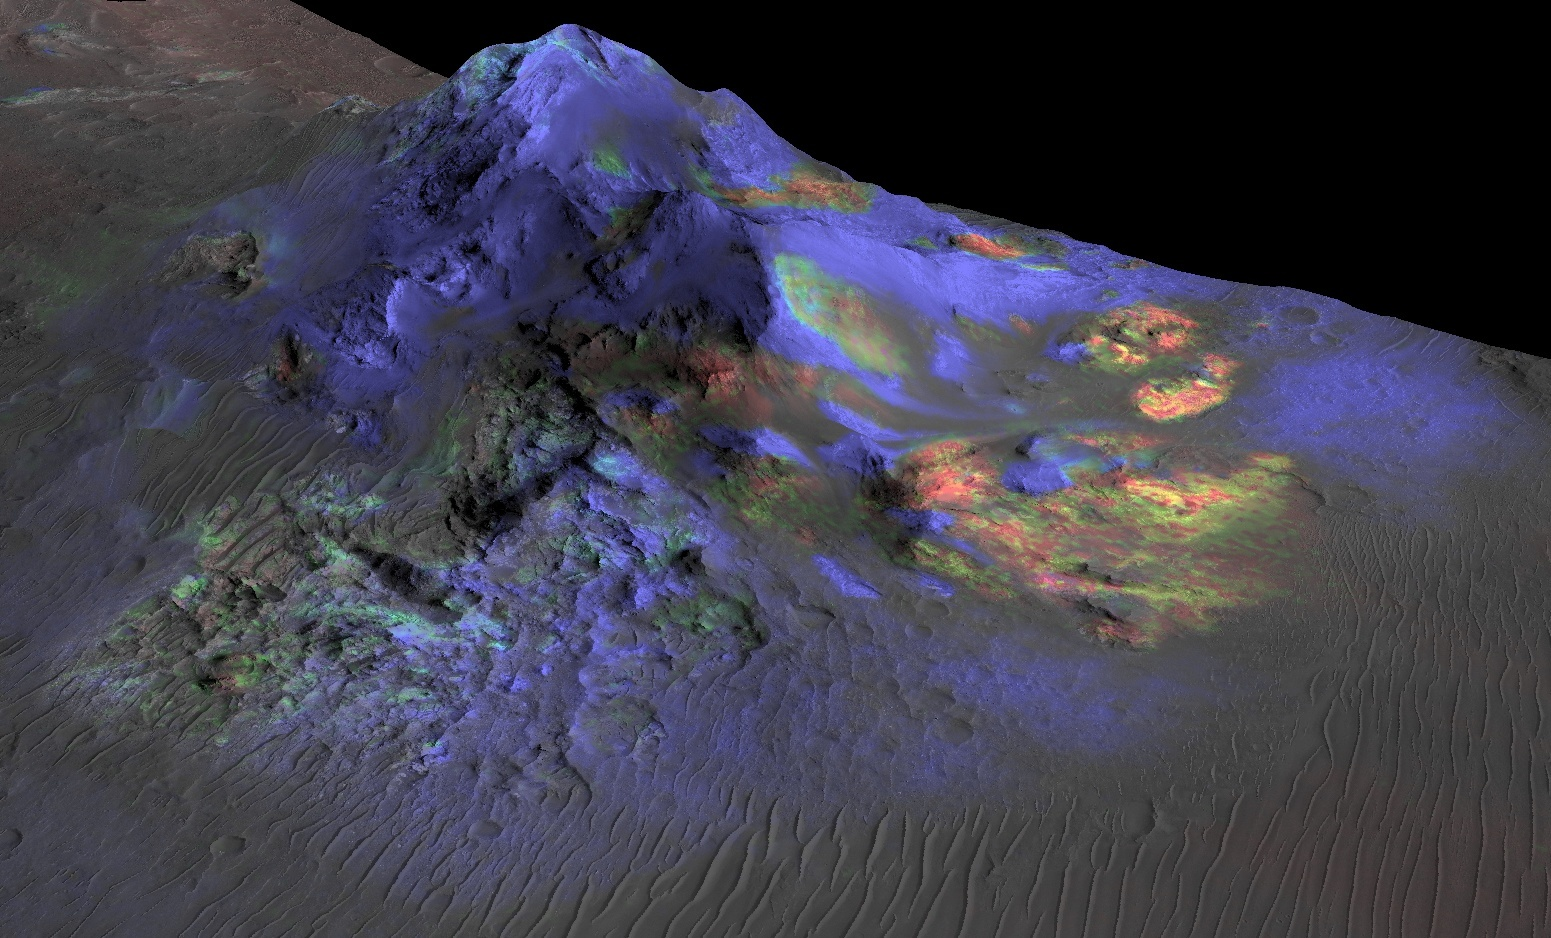 The Martian surface is covered in glass and could show signs of past life